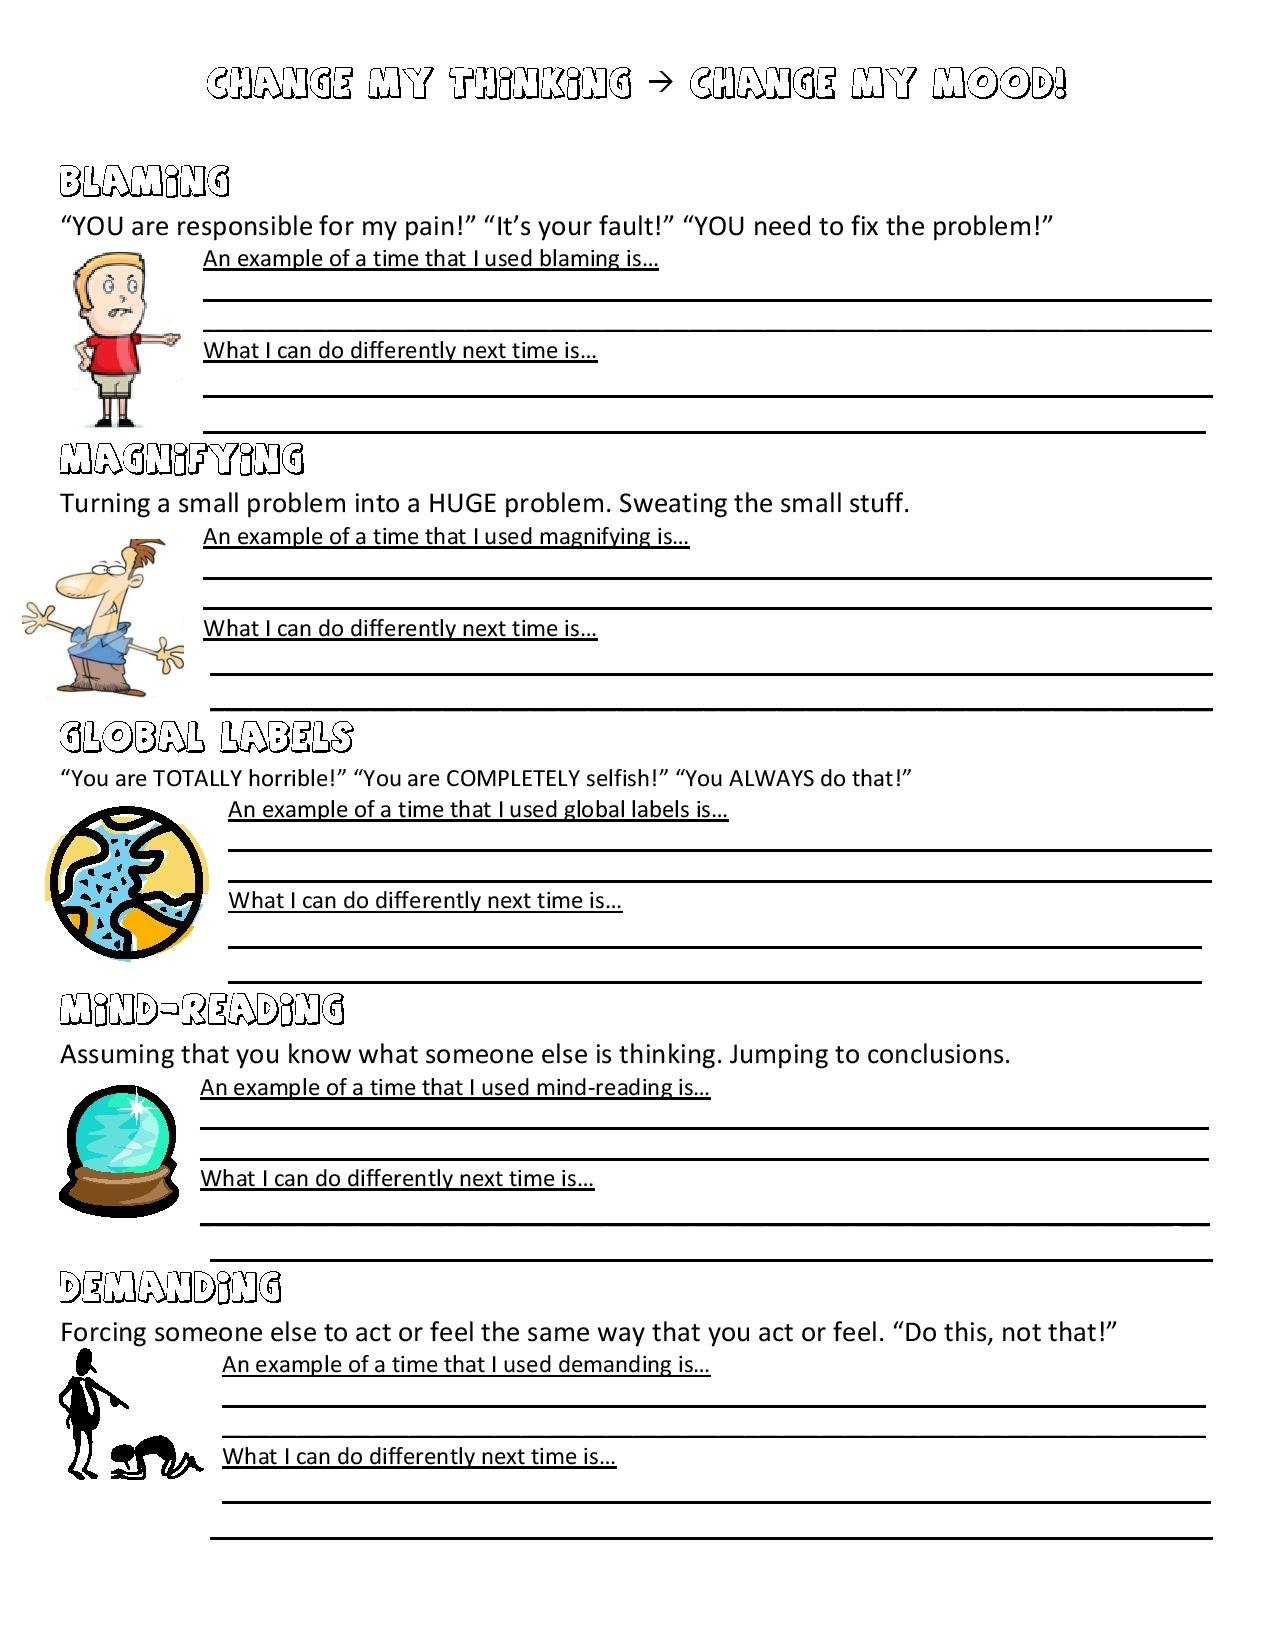 Social Skills Worksheets For Middle School